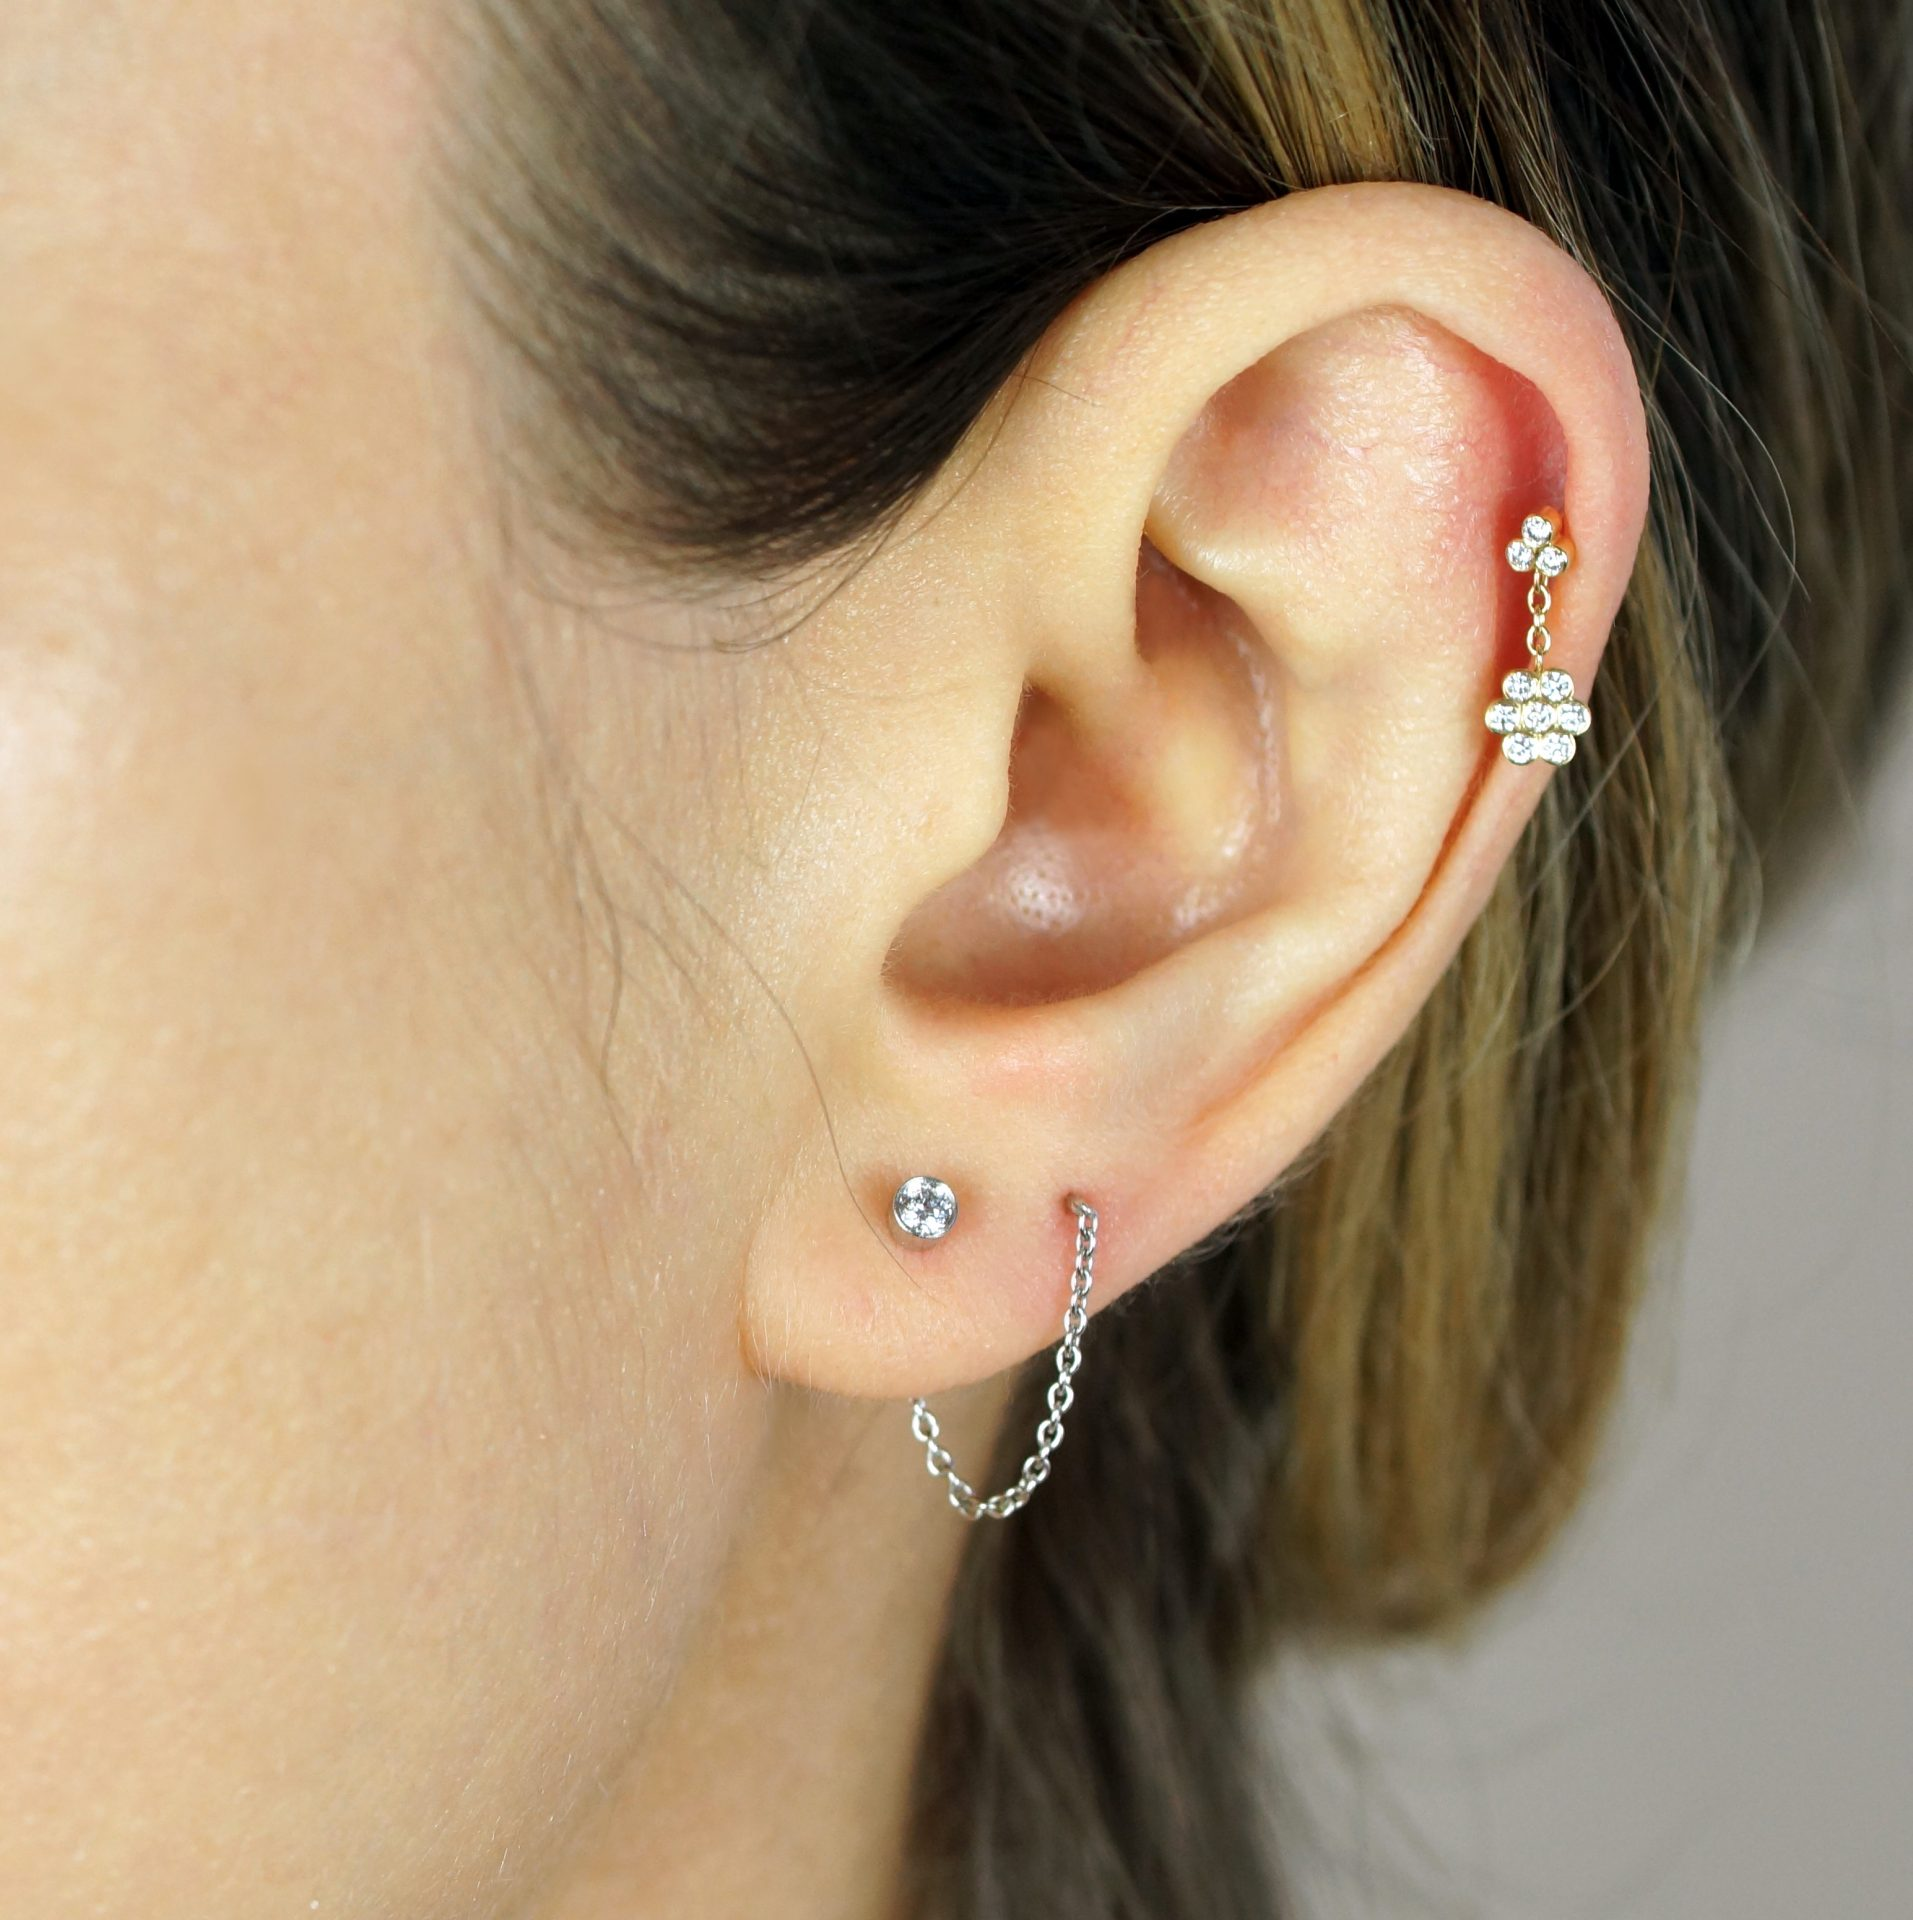 luxury piercing ideas curated ear 18k gold natural diamond stud helix tragus cartilage